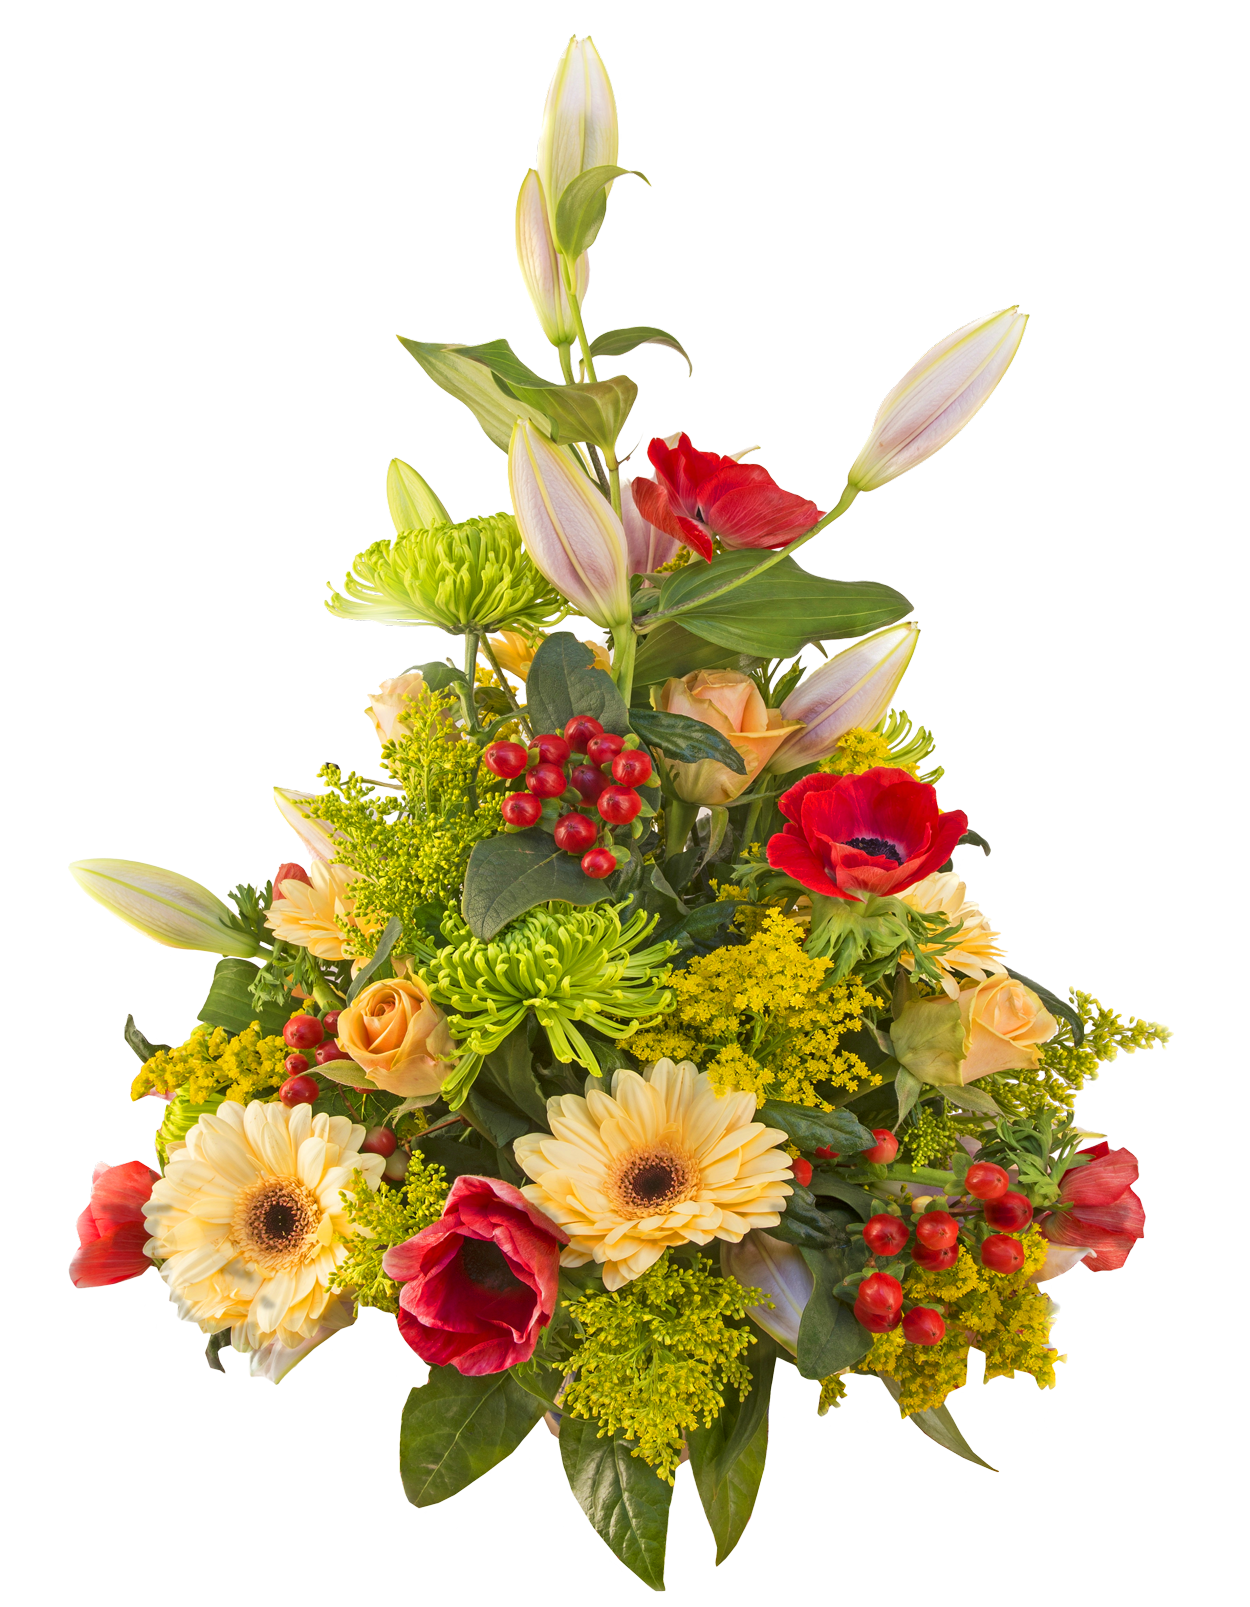 flower bouquet png transparent picture Flower bouquet png